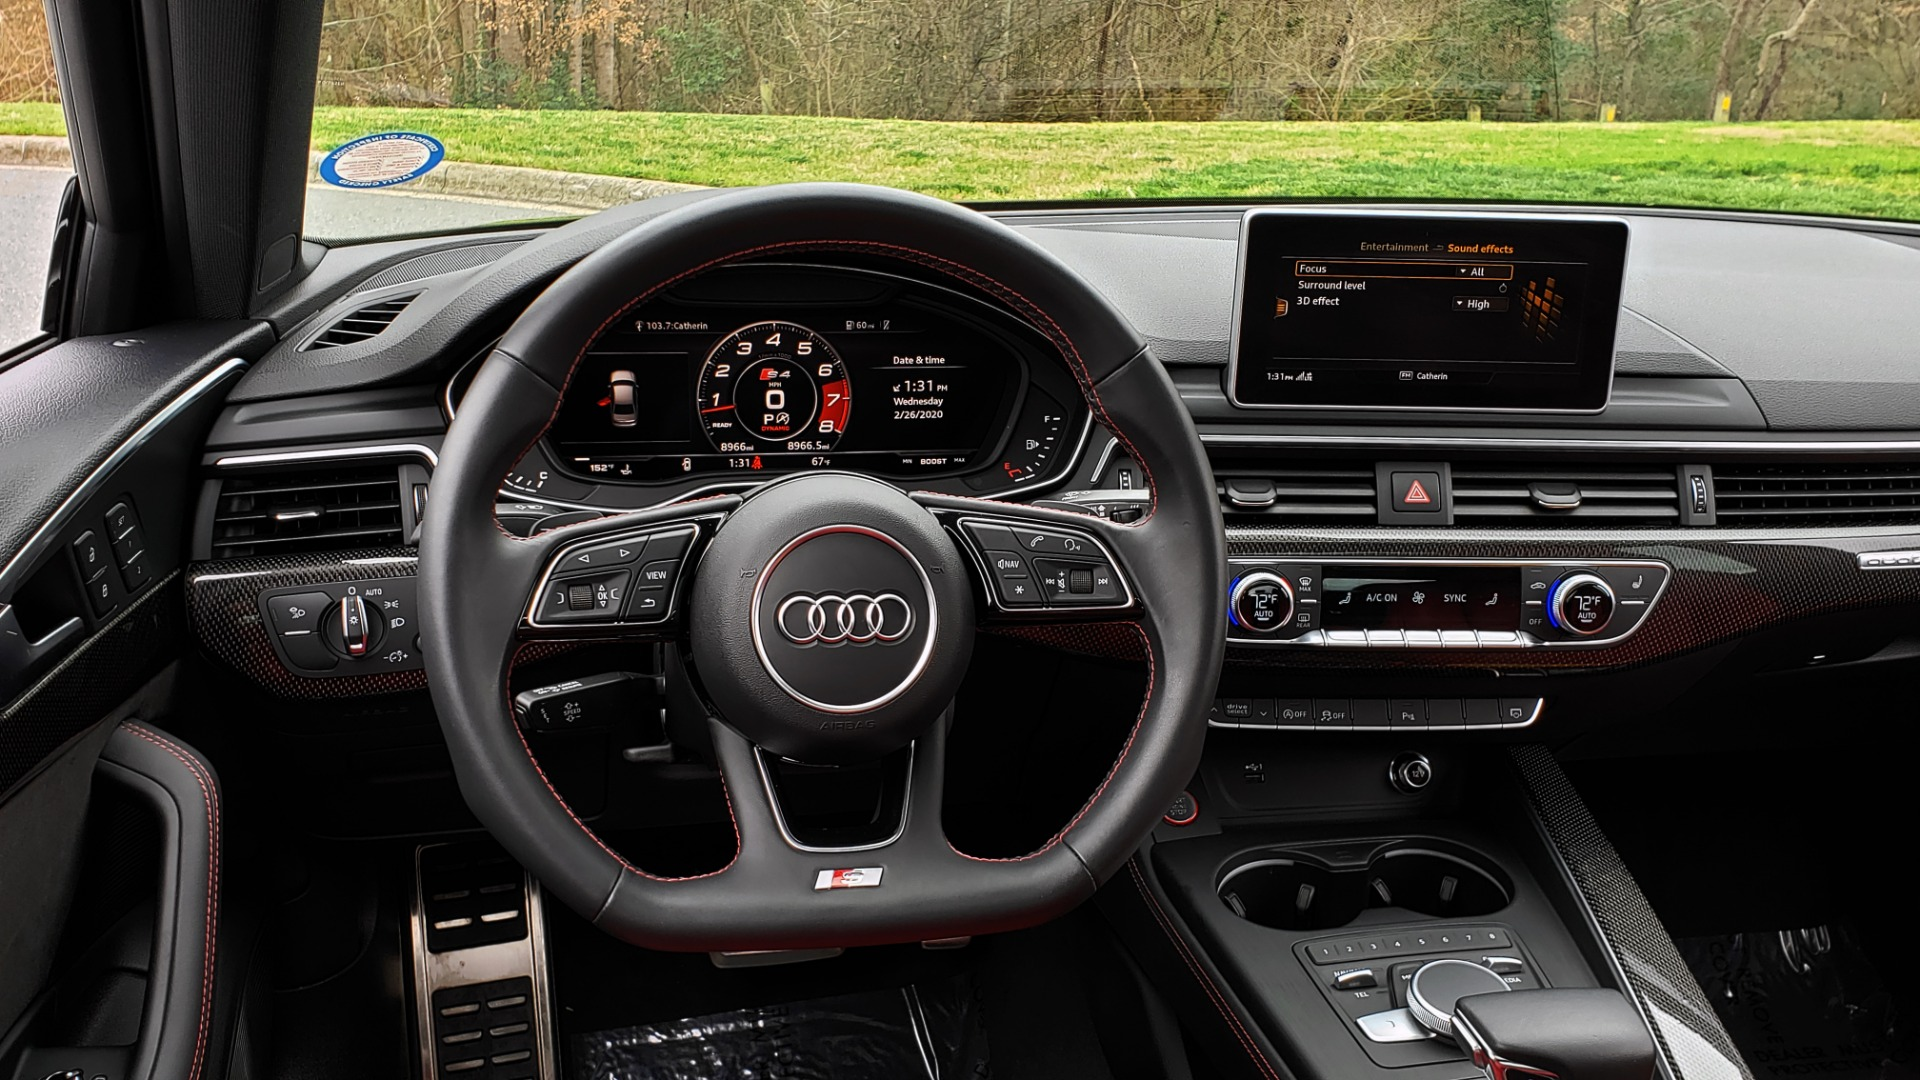 Used 2019 Audi S4 PREMIUM PLUS / AWD / NAV / SUNROOF / B&O SOUND / REARVIEW for sale Sold at Formula Imports in Charlotte NC 28227 40